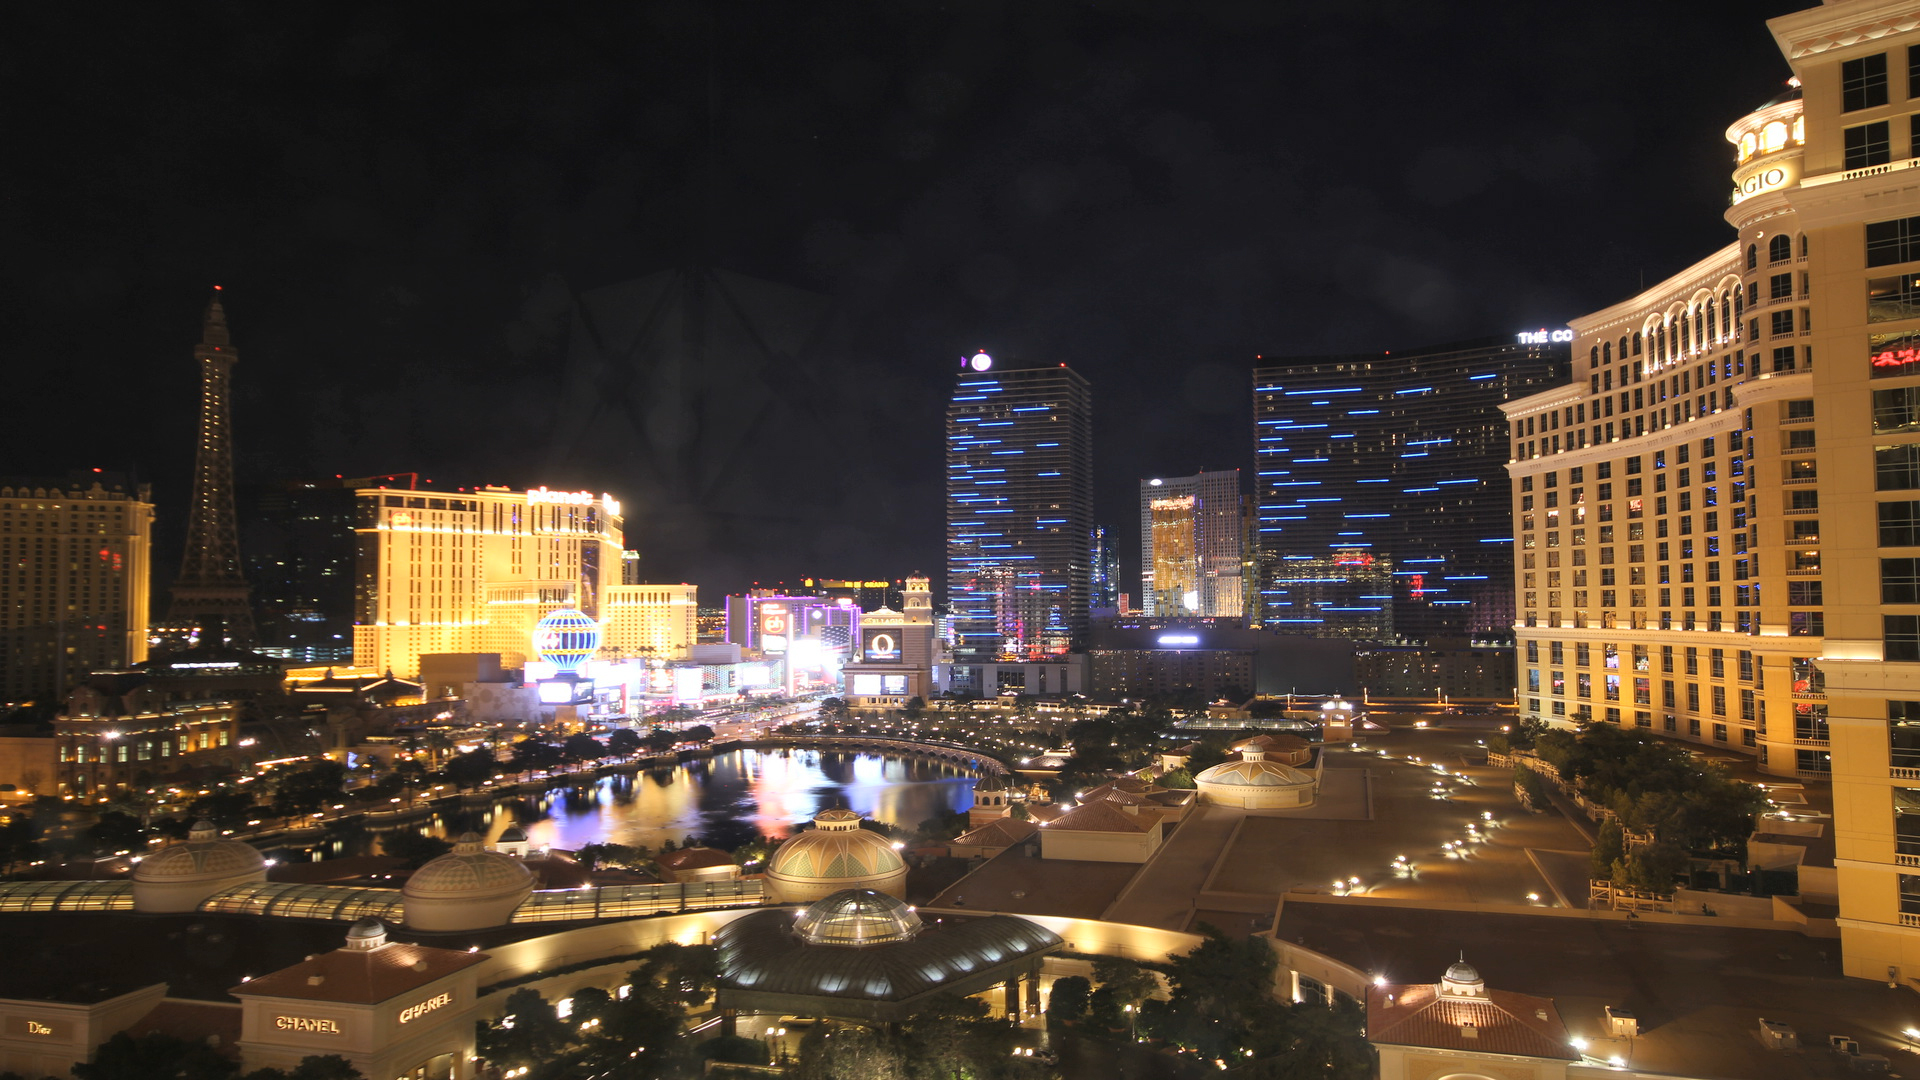 las vegas strip time lapse night into day unlimited free stock photos royalty free images. Black Bedroom Furniture Sets. Home Design Ideas